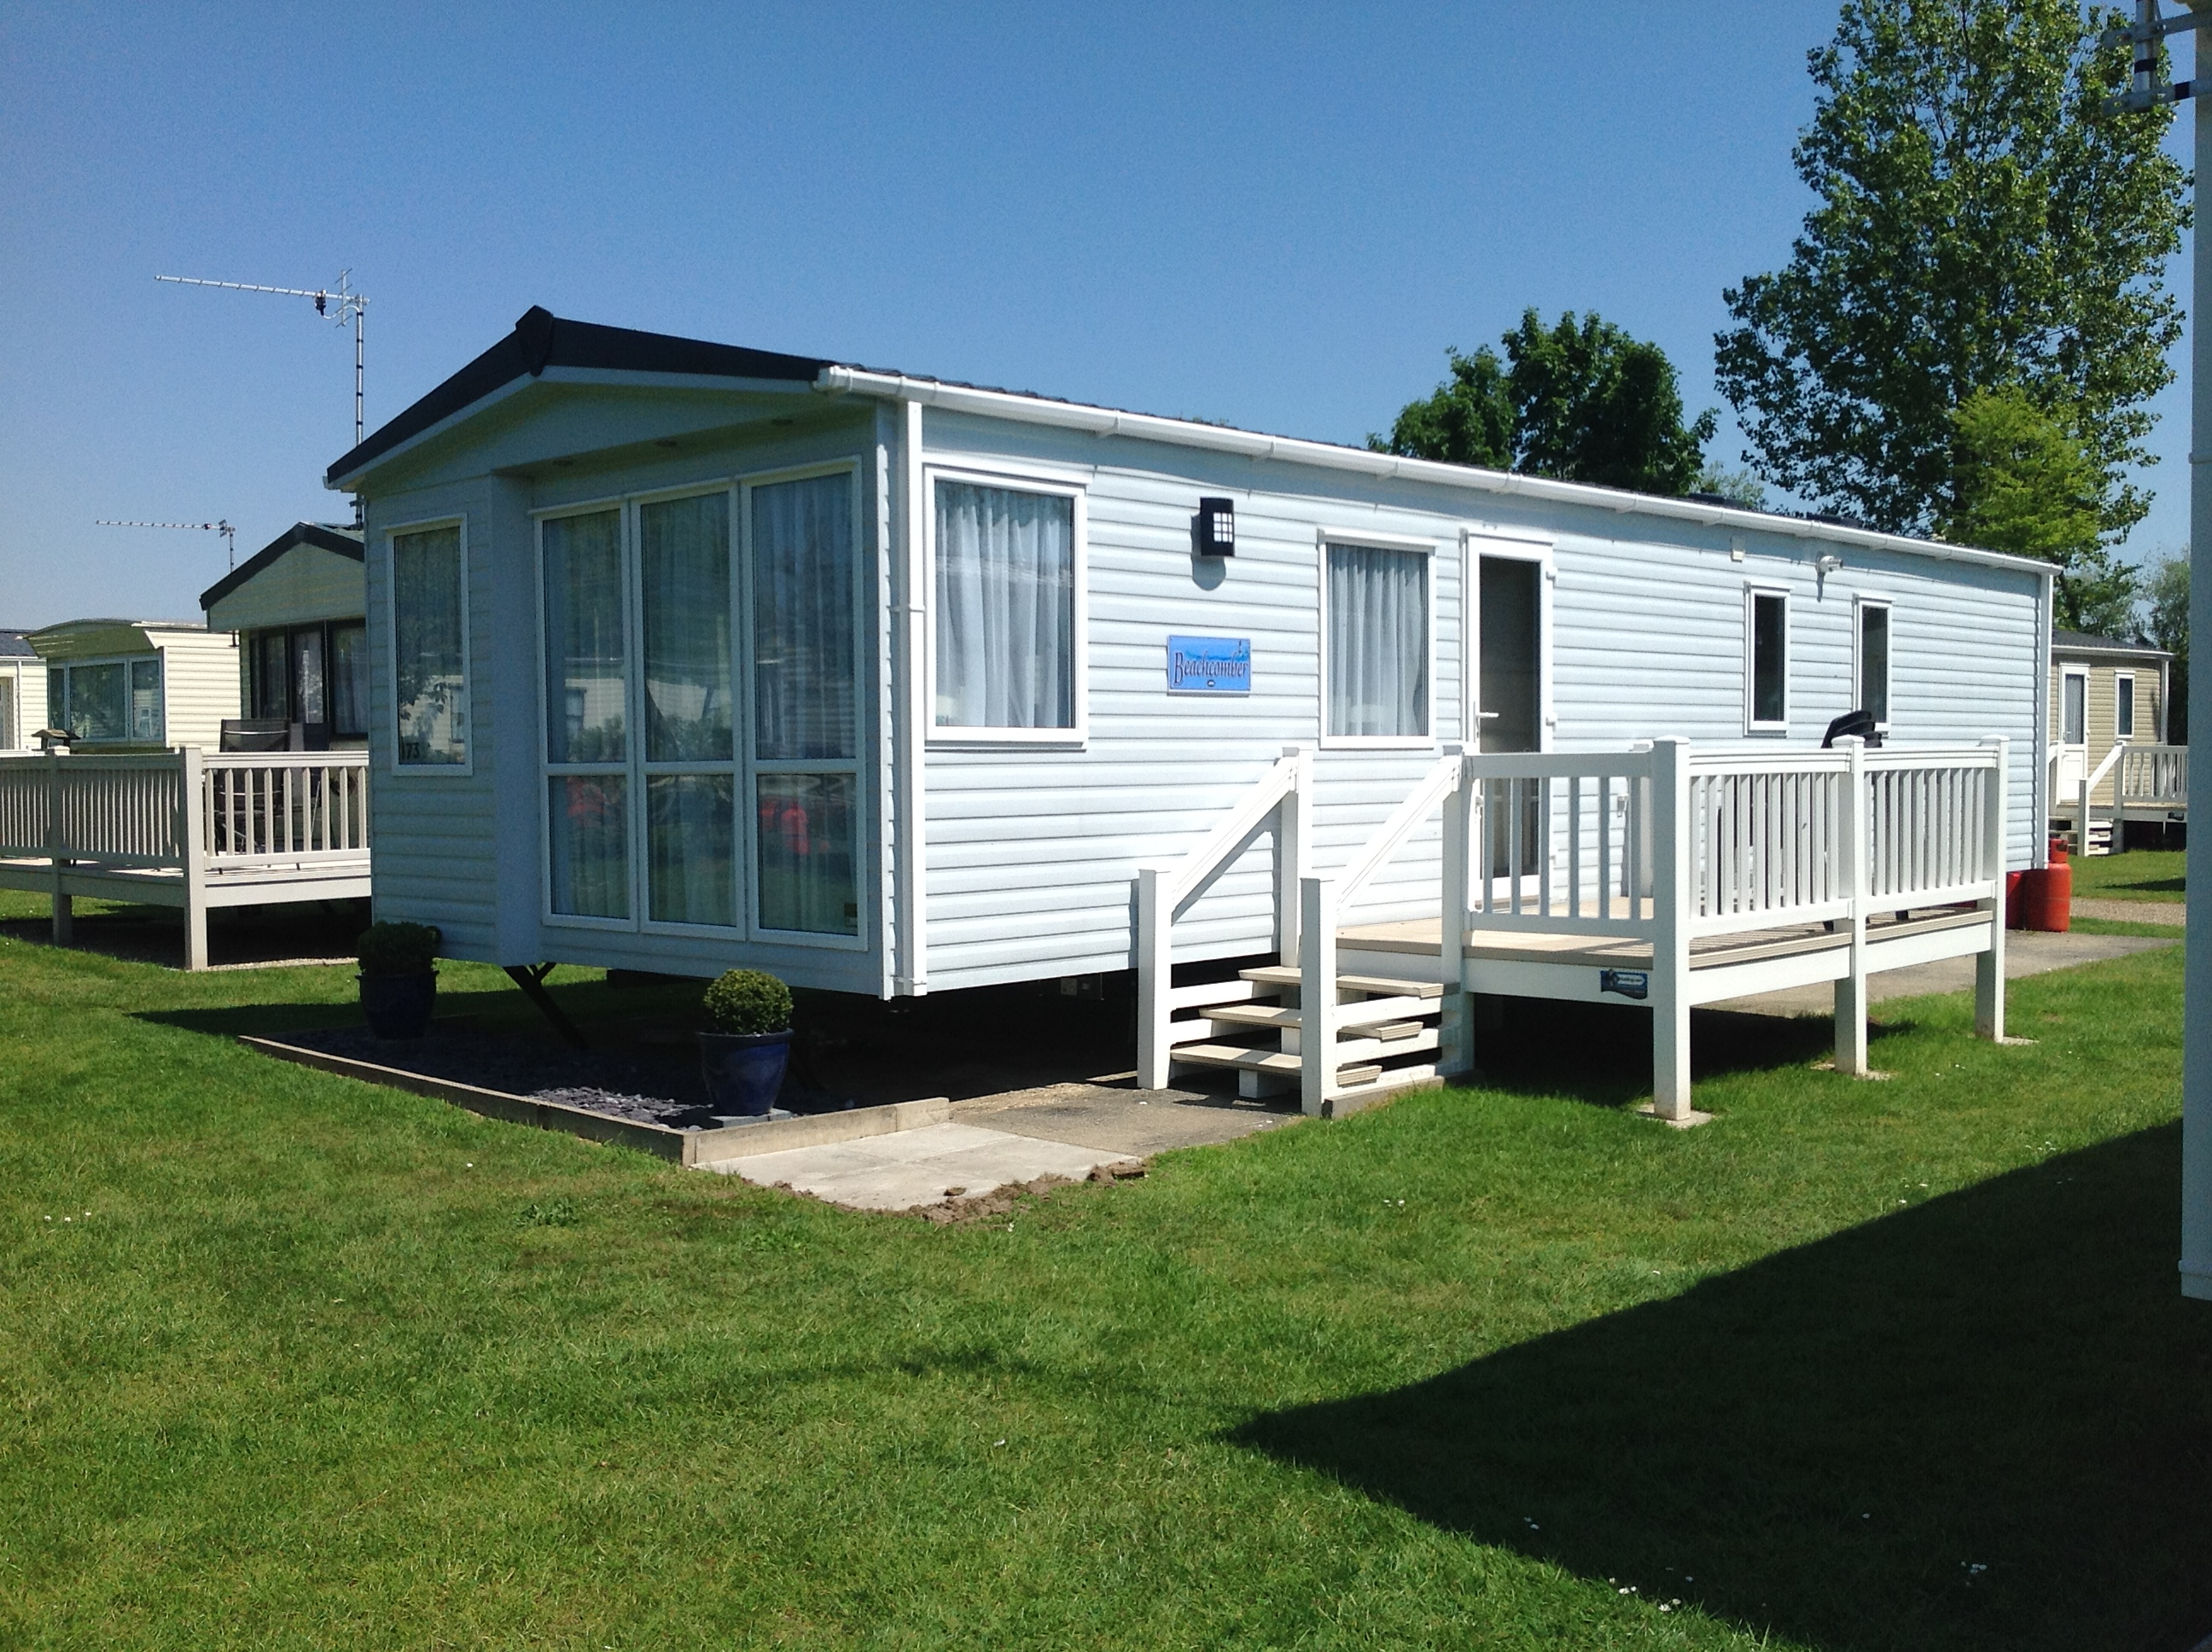 Holiday Homes - Yorkshire Herald & Advertiser